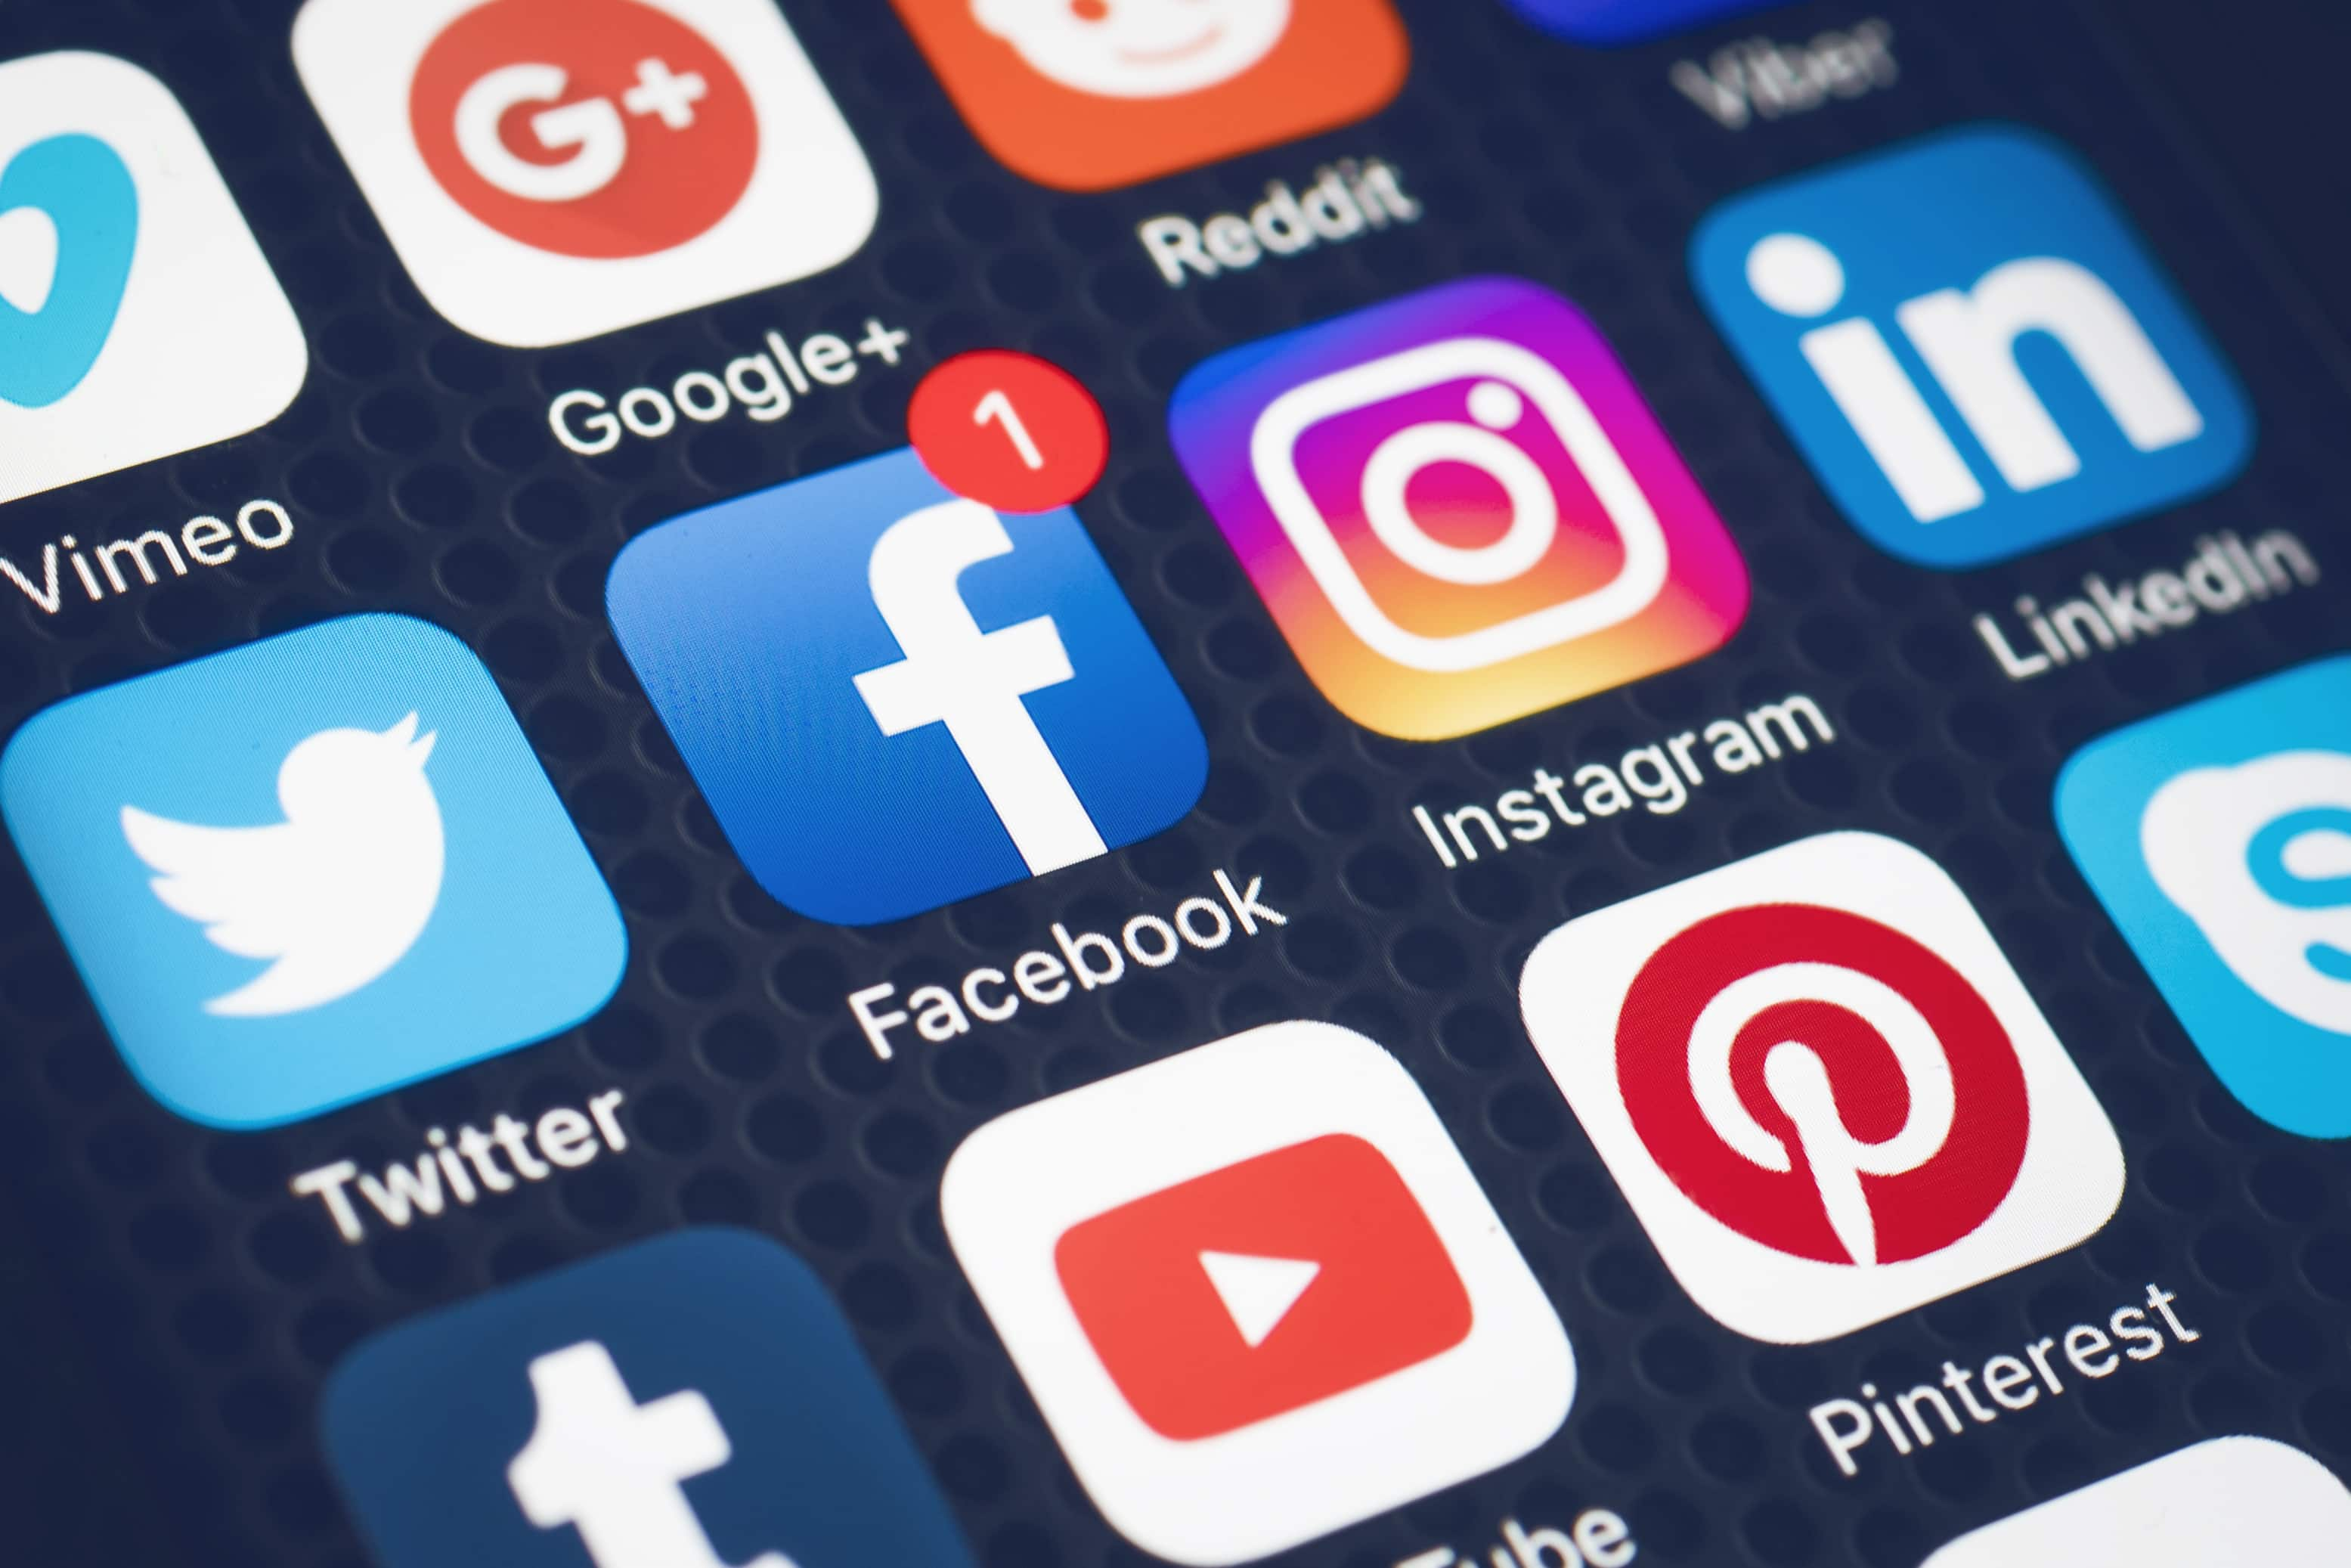 Understand the cost of marketing your app on social media